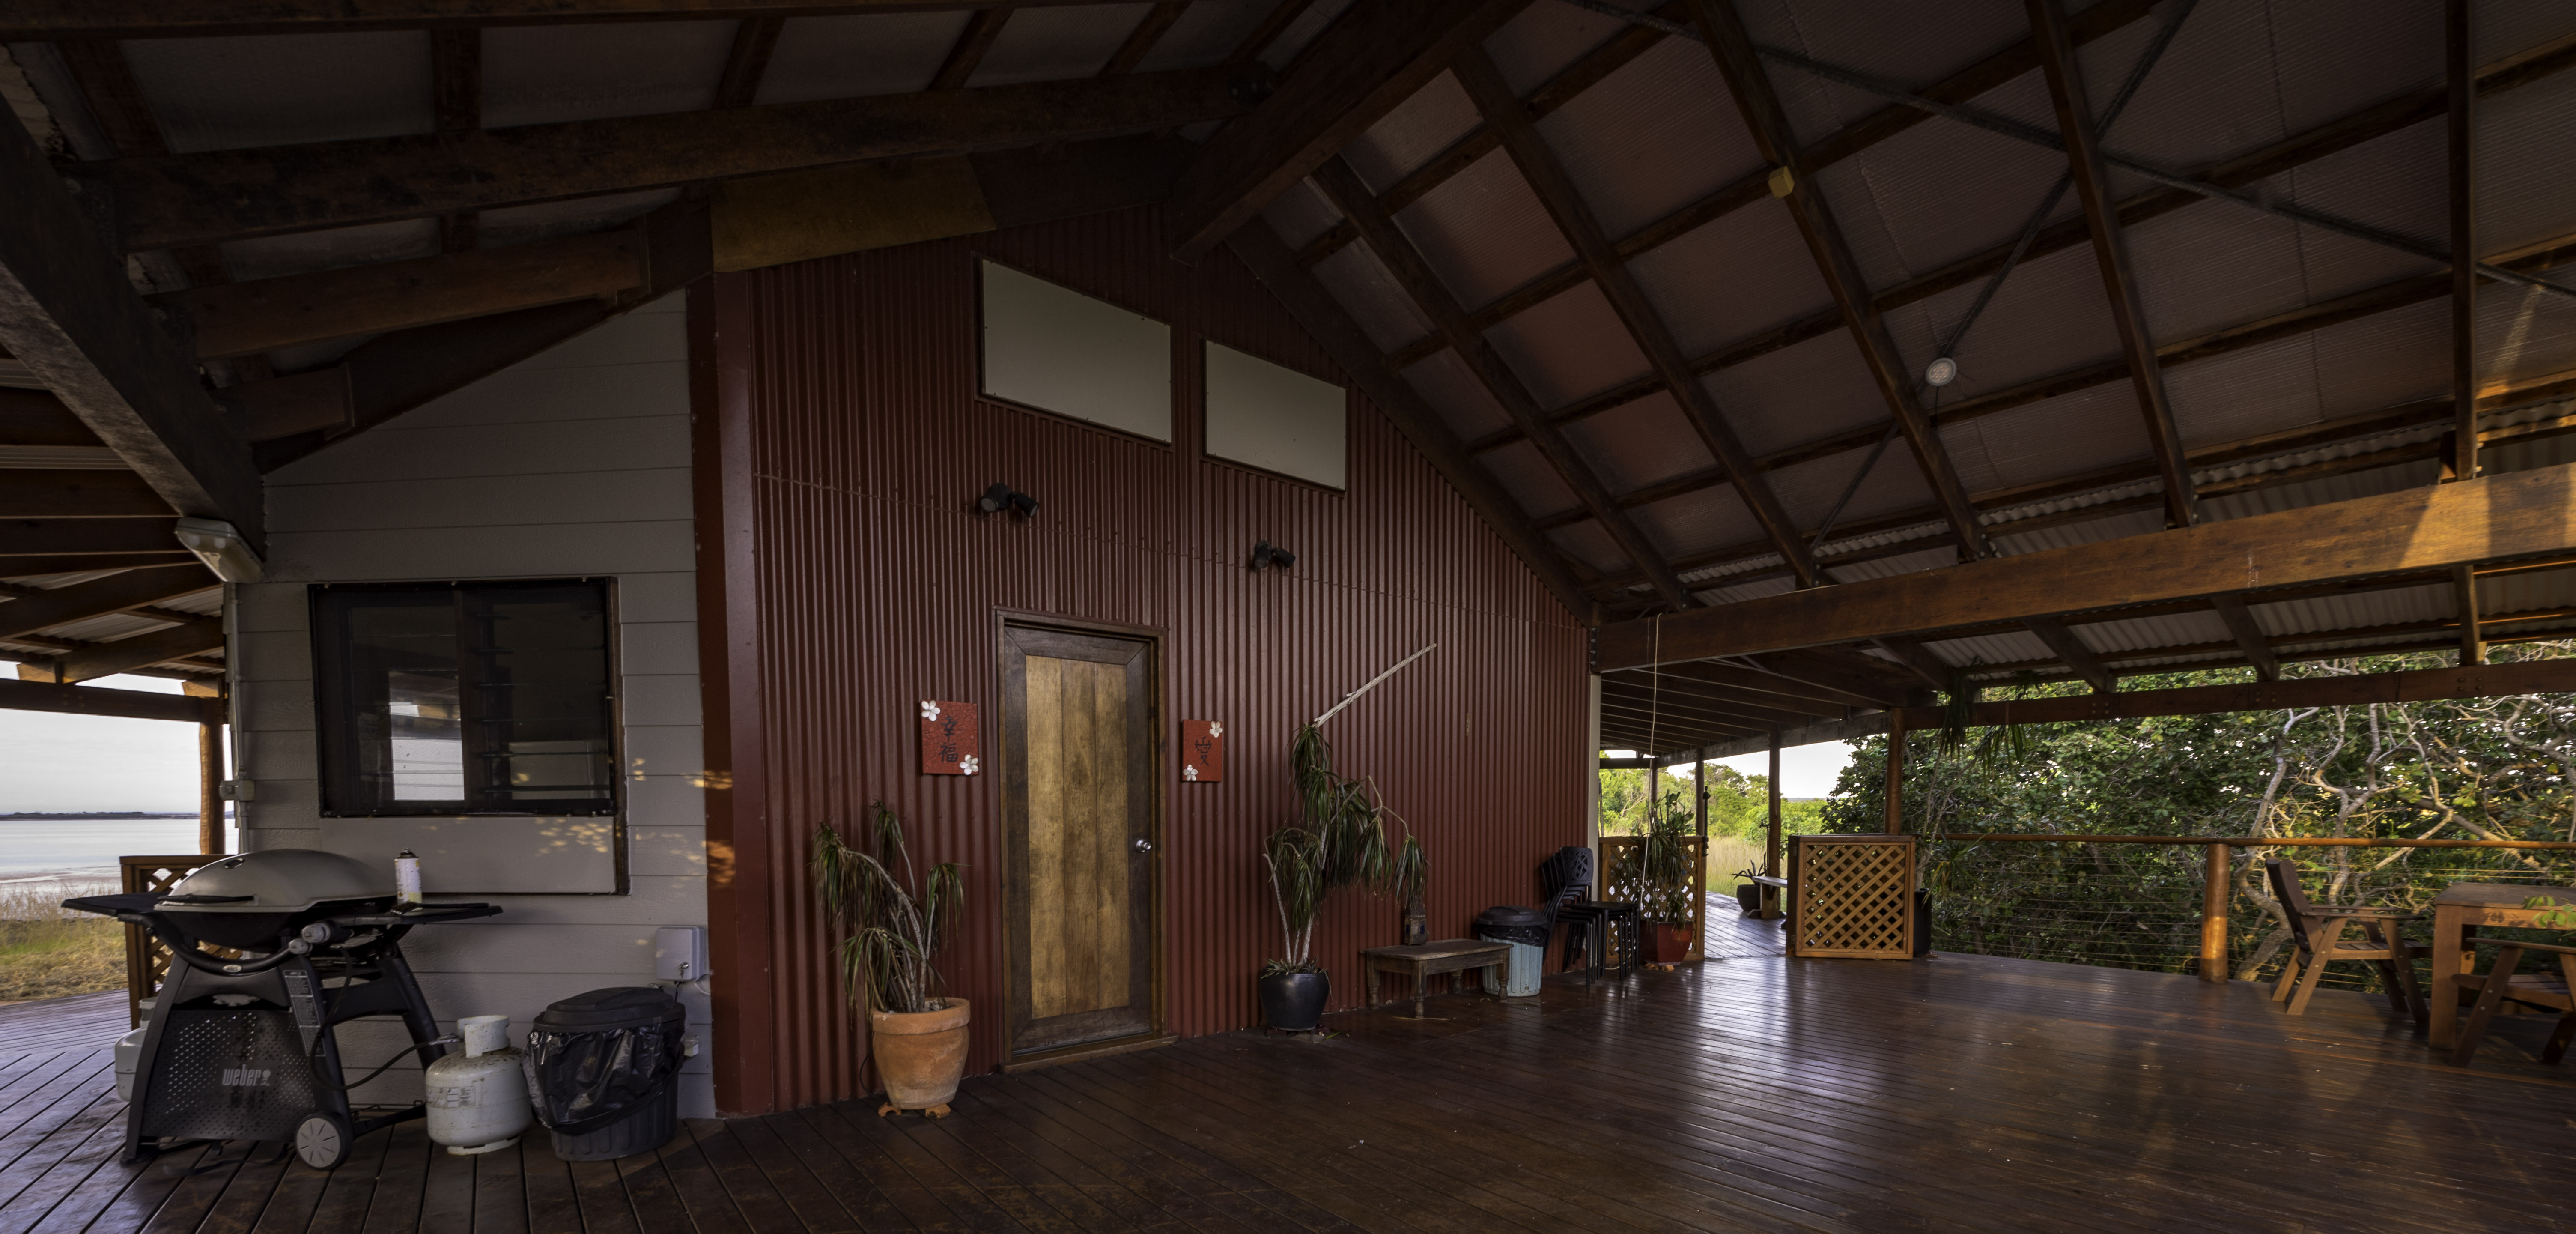 Cygnet Bay Broome accommodation